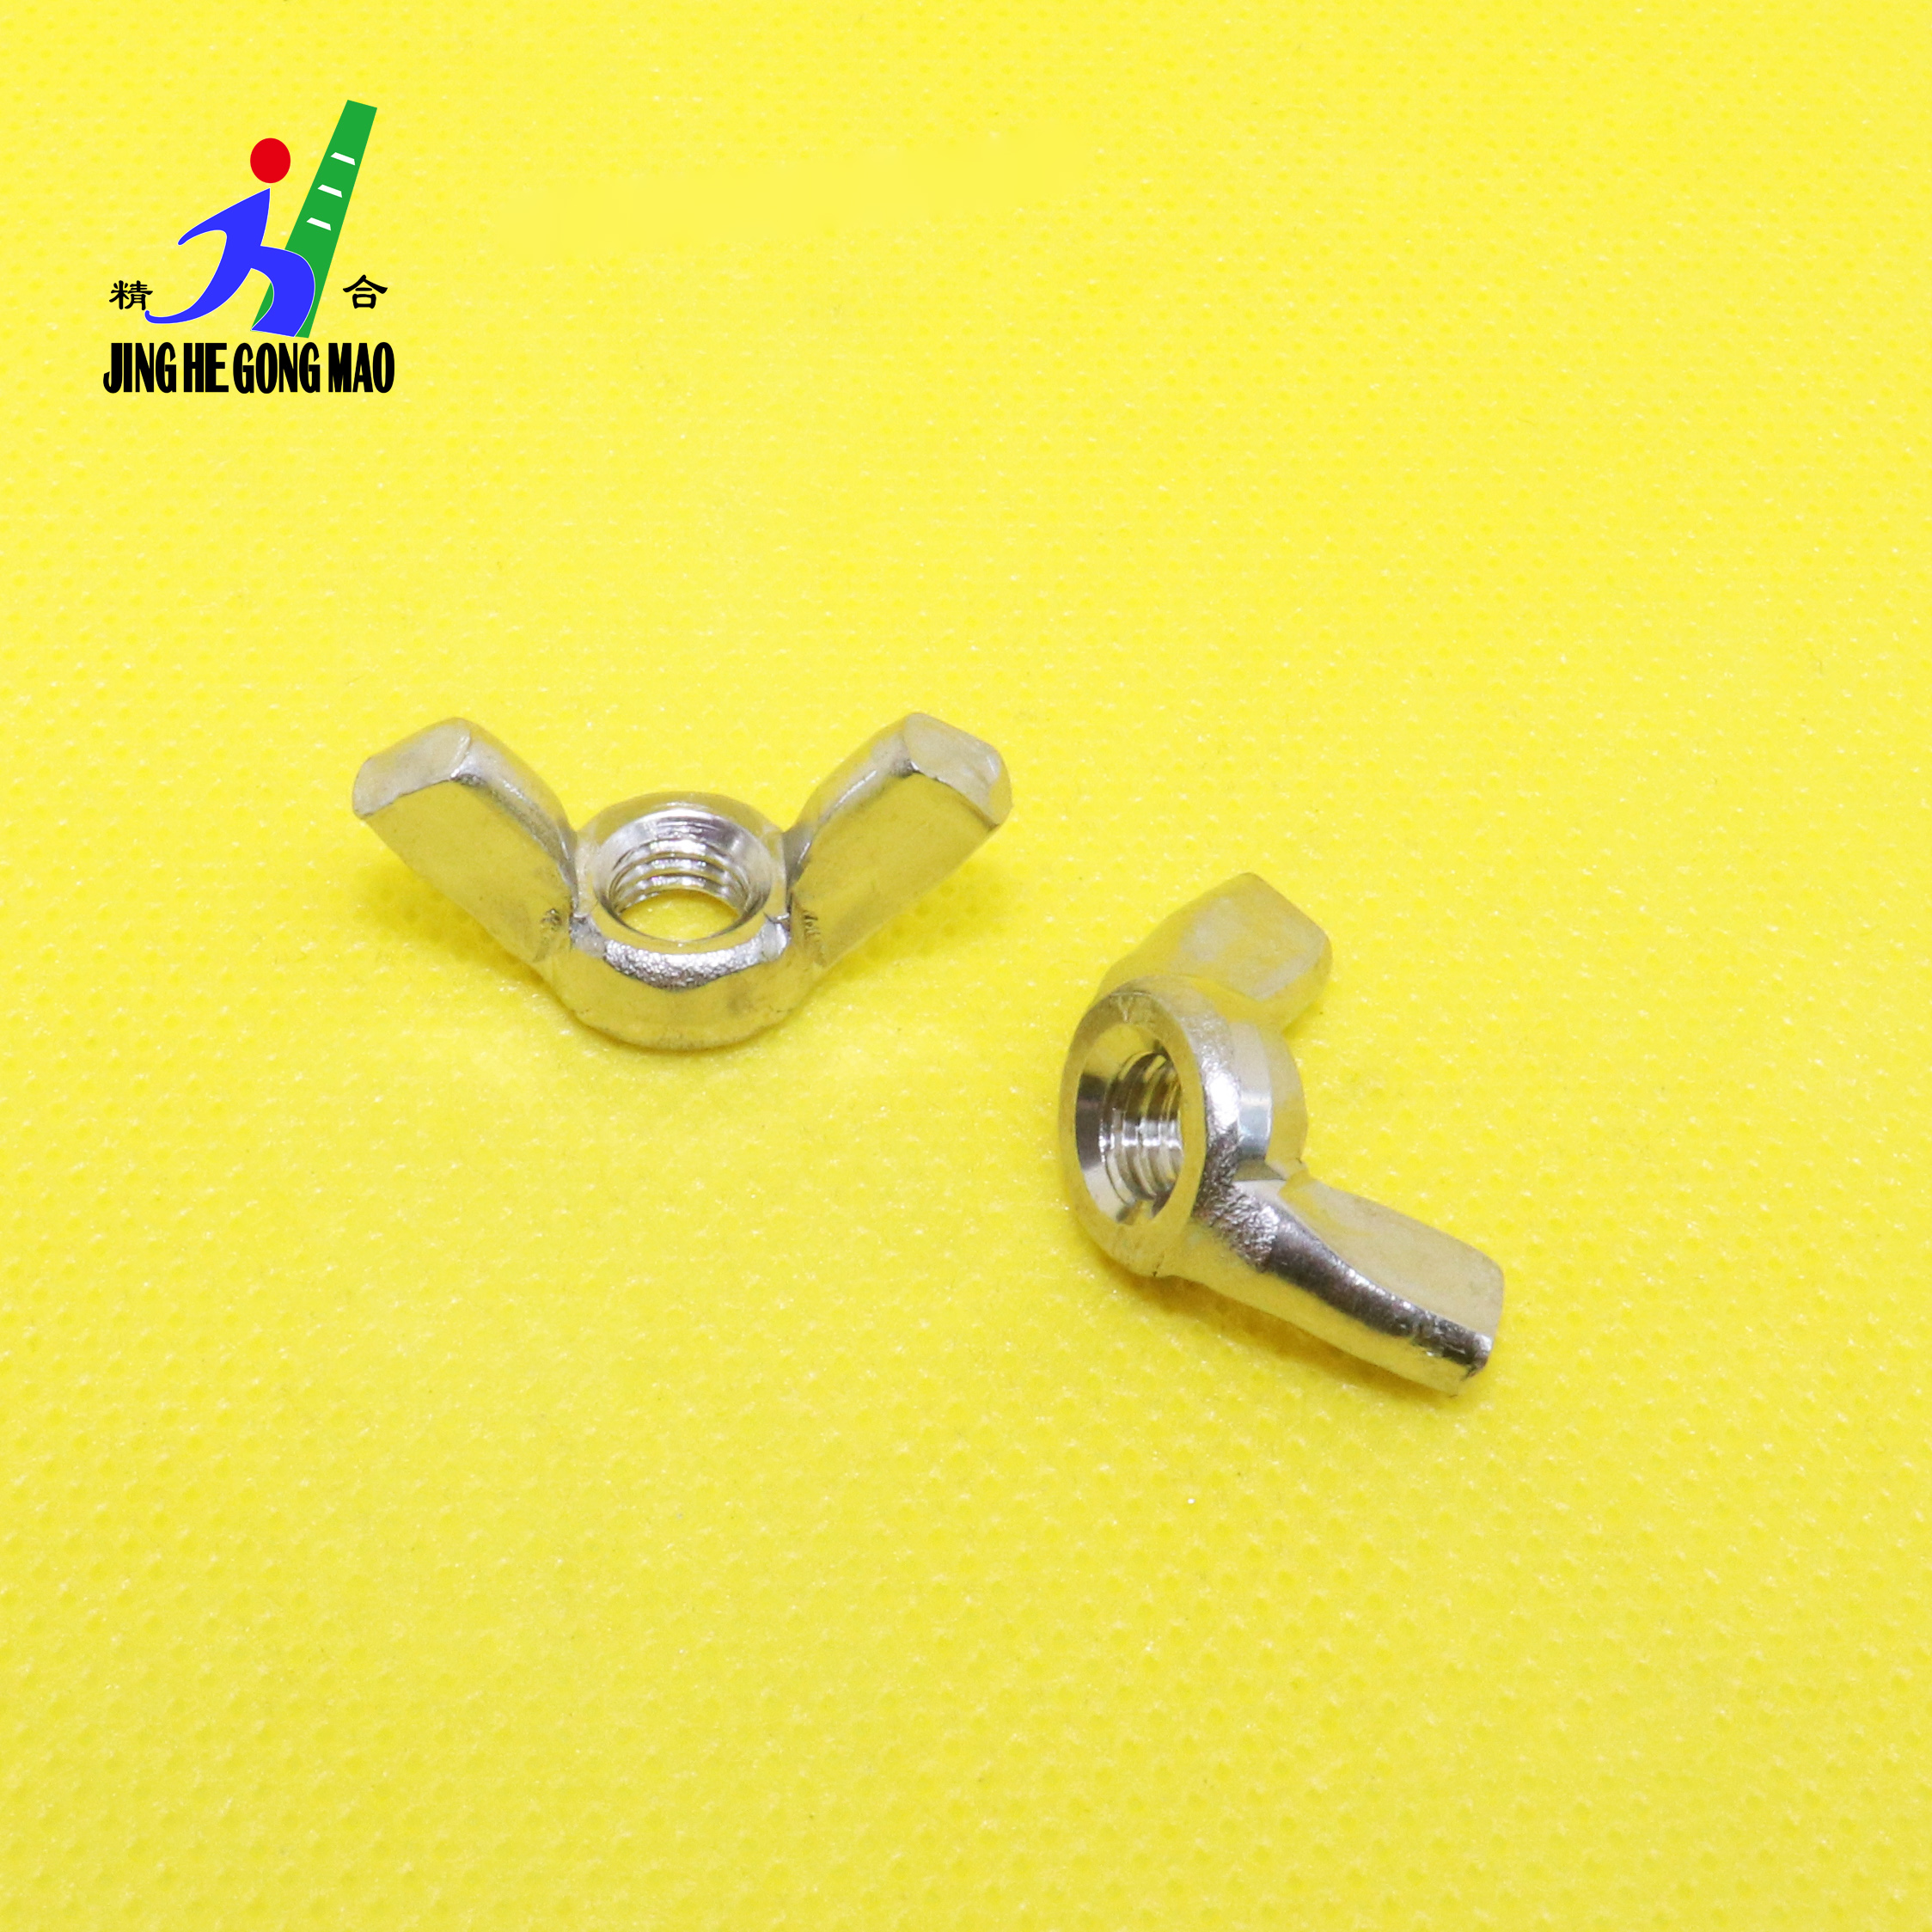 M3 M4 M5 M6 M8 M10 DIN315 304 Stainless Steel Wing Nuts Hand Tighten Nut Butterfly Nut Ingot SUS304 Crocheted 3MM 4MM 5MM 6MM